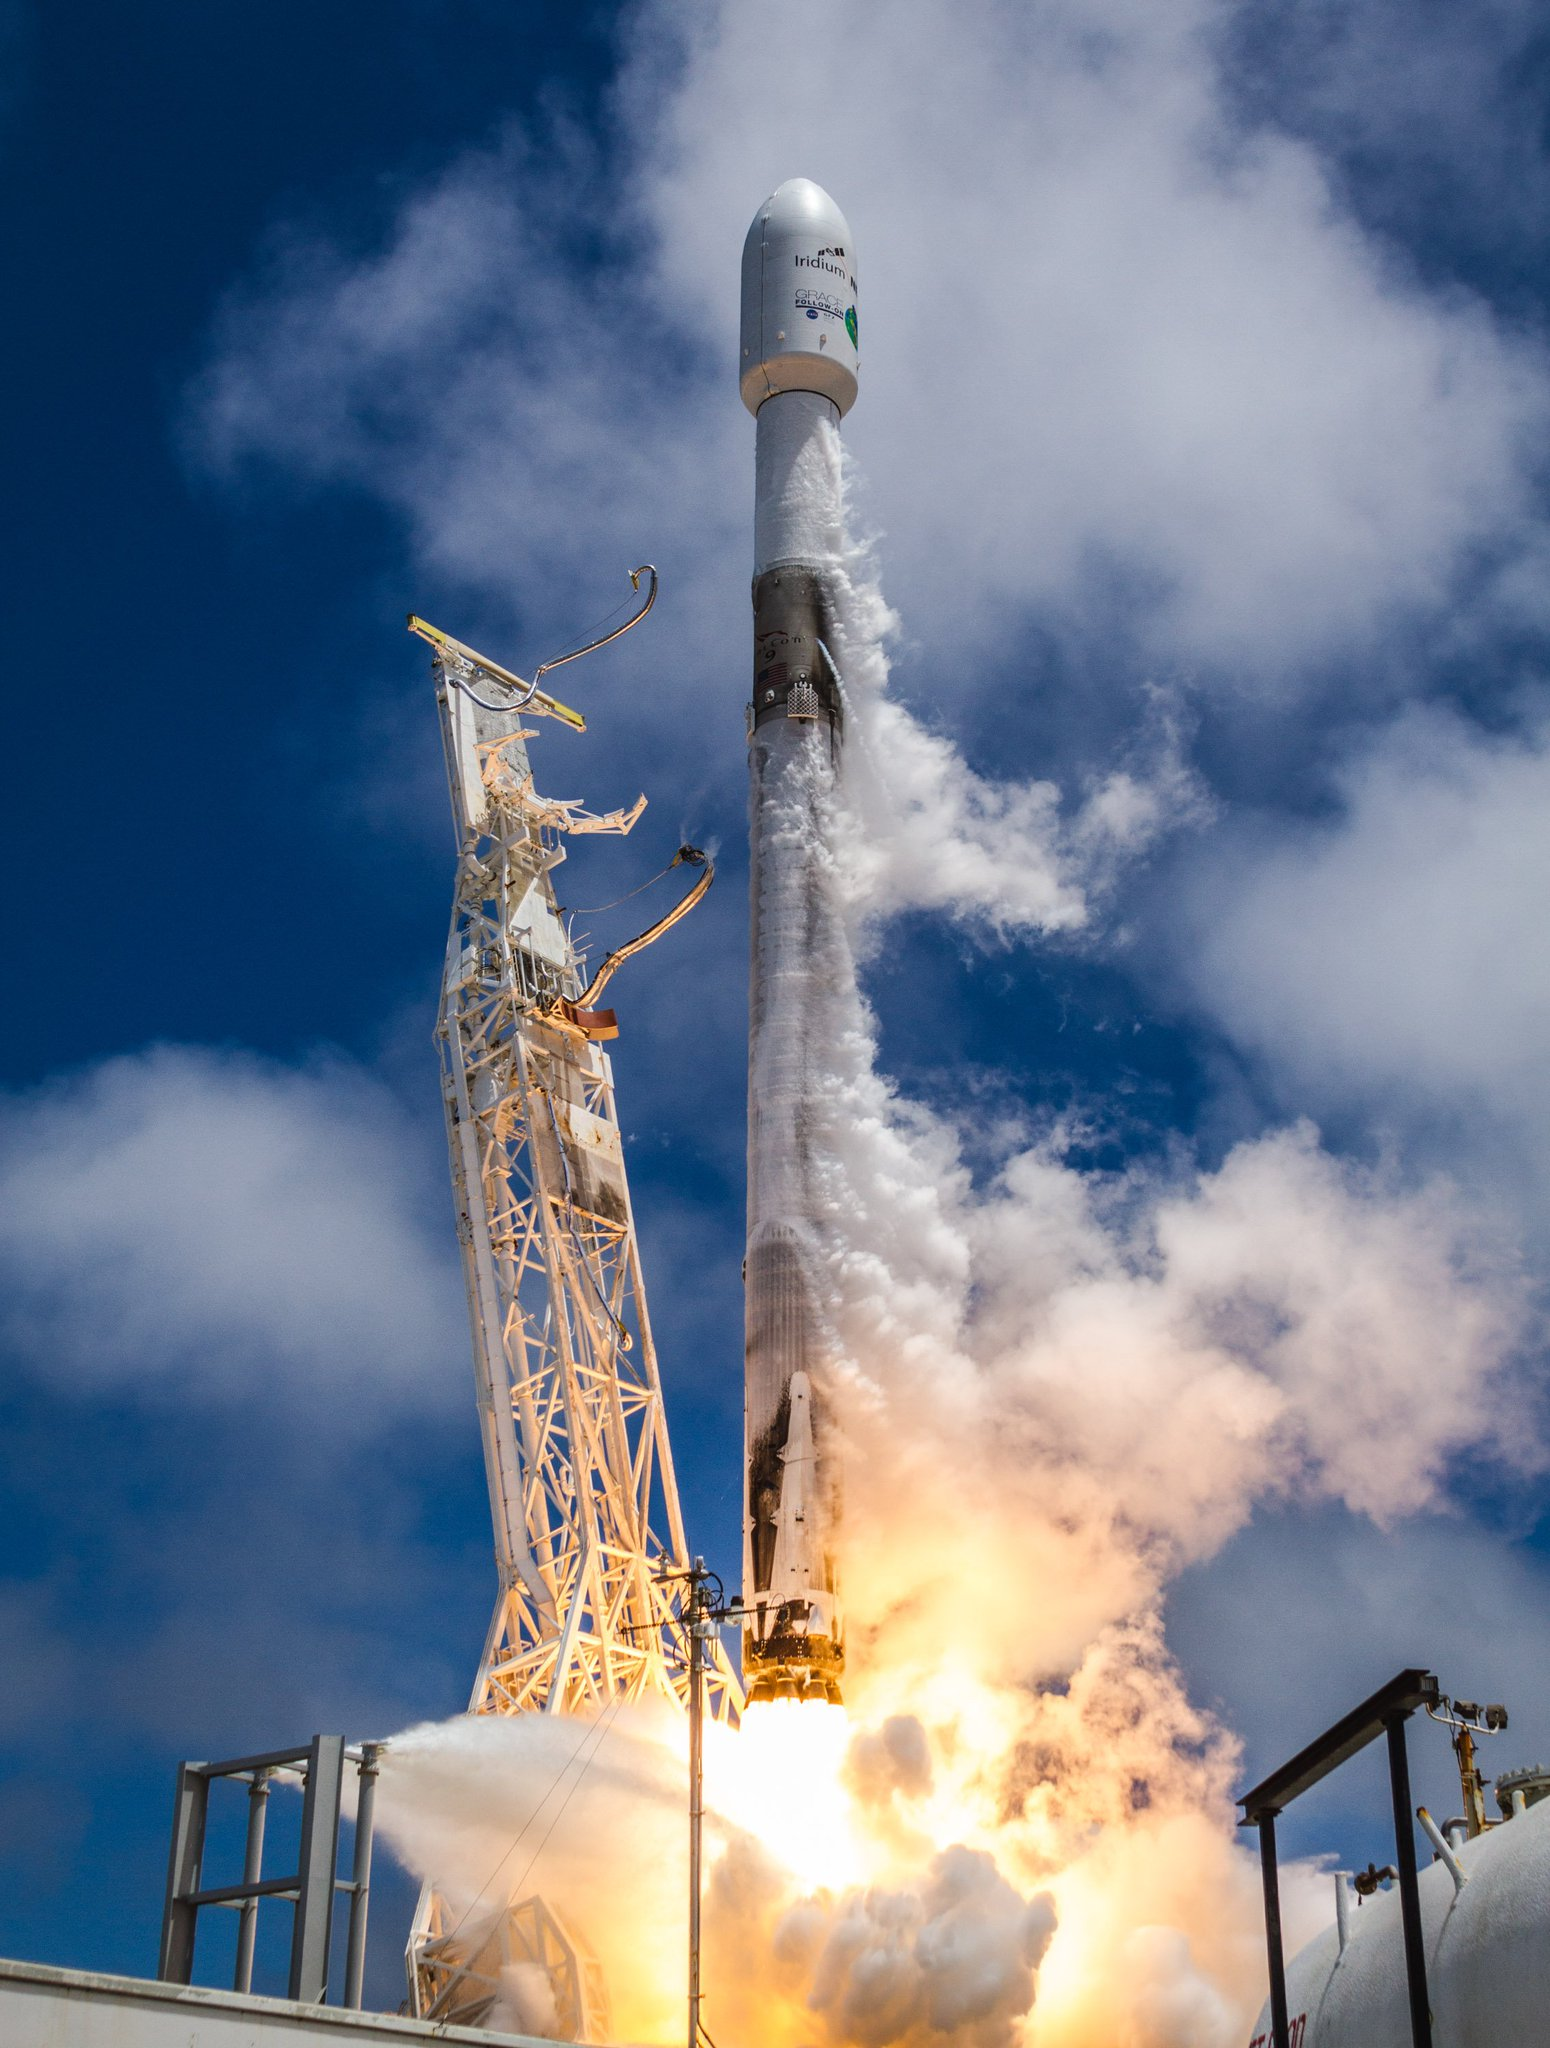 More photos from today's Falcon 9 launch → https://t.co/095WHX44BX https://t.co/K2QlUnwKcJ